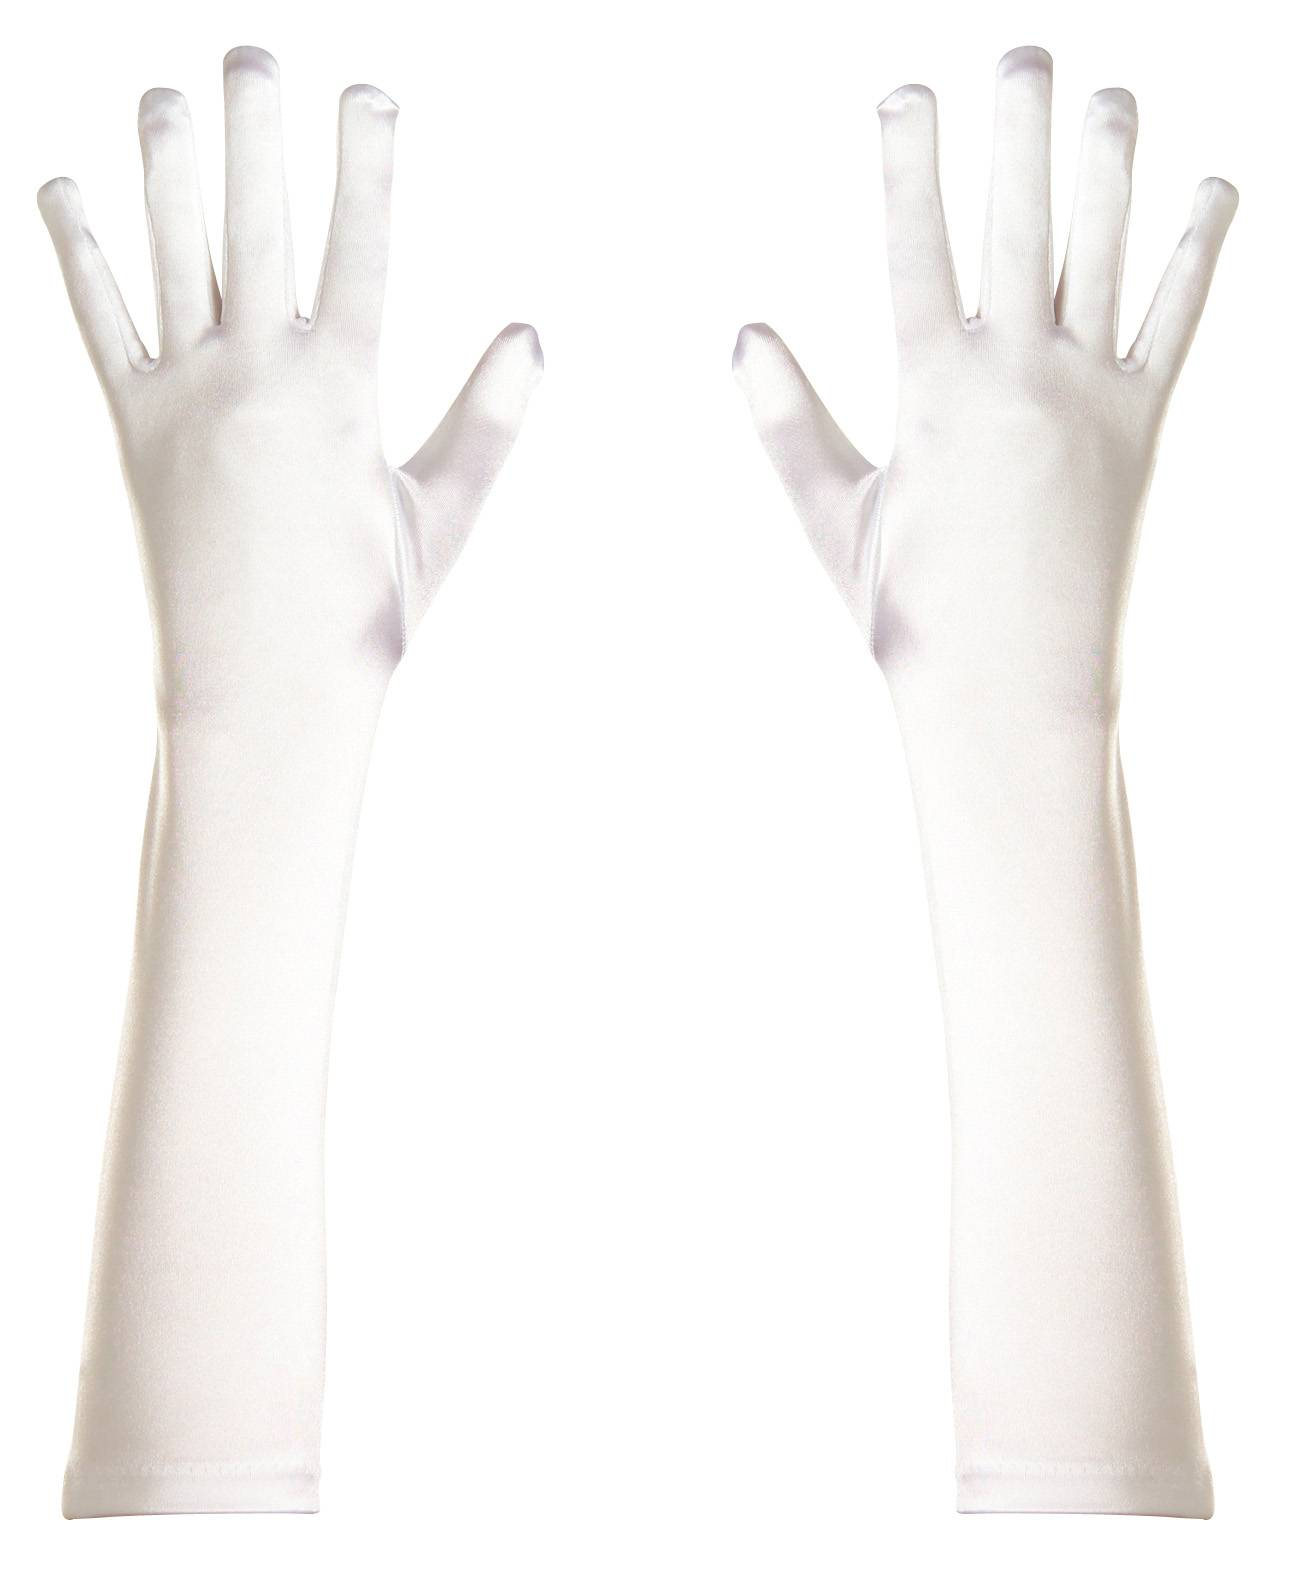 Gants-blancs-satin-43cm